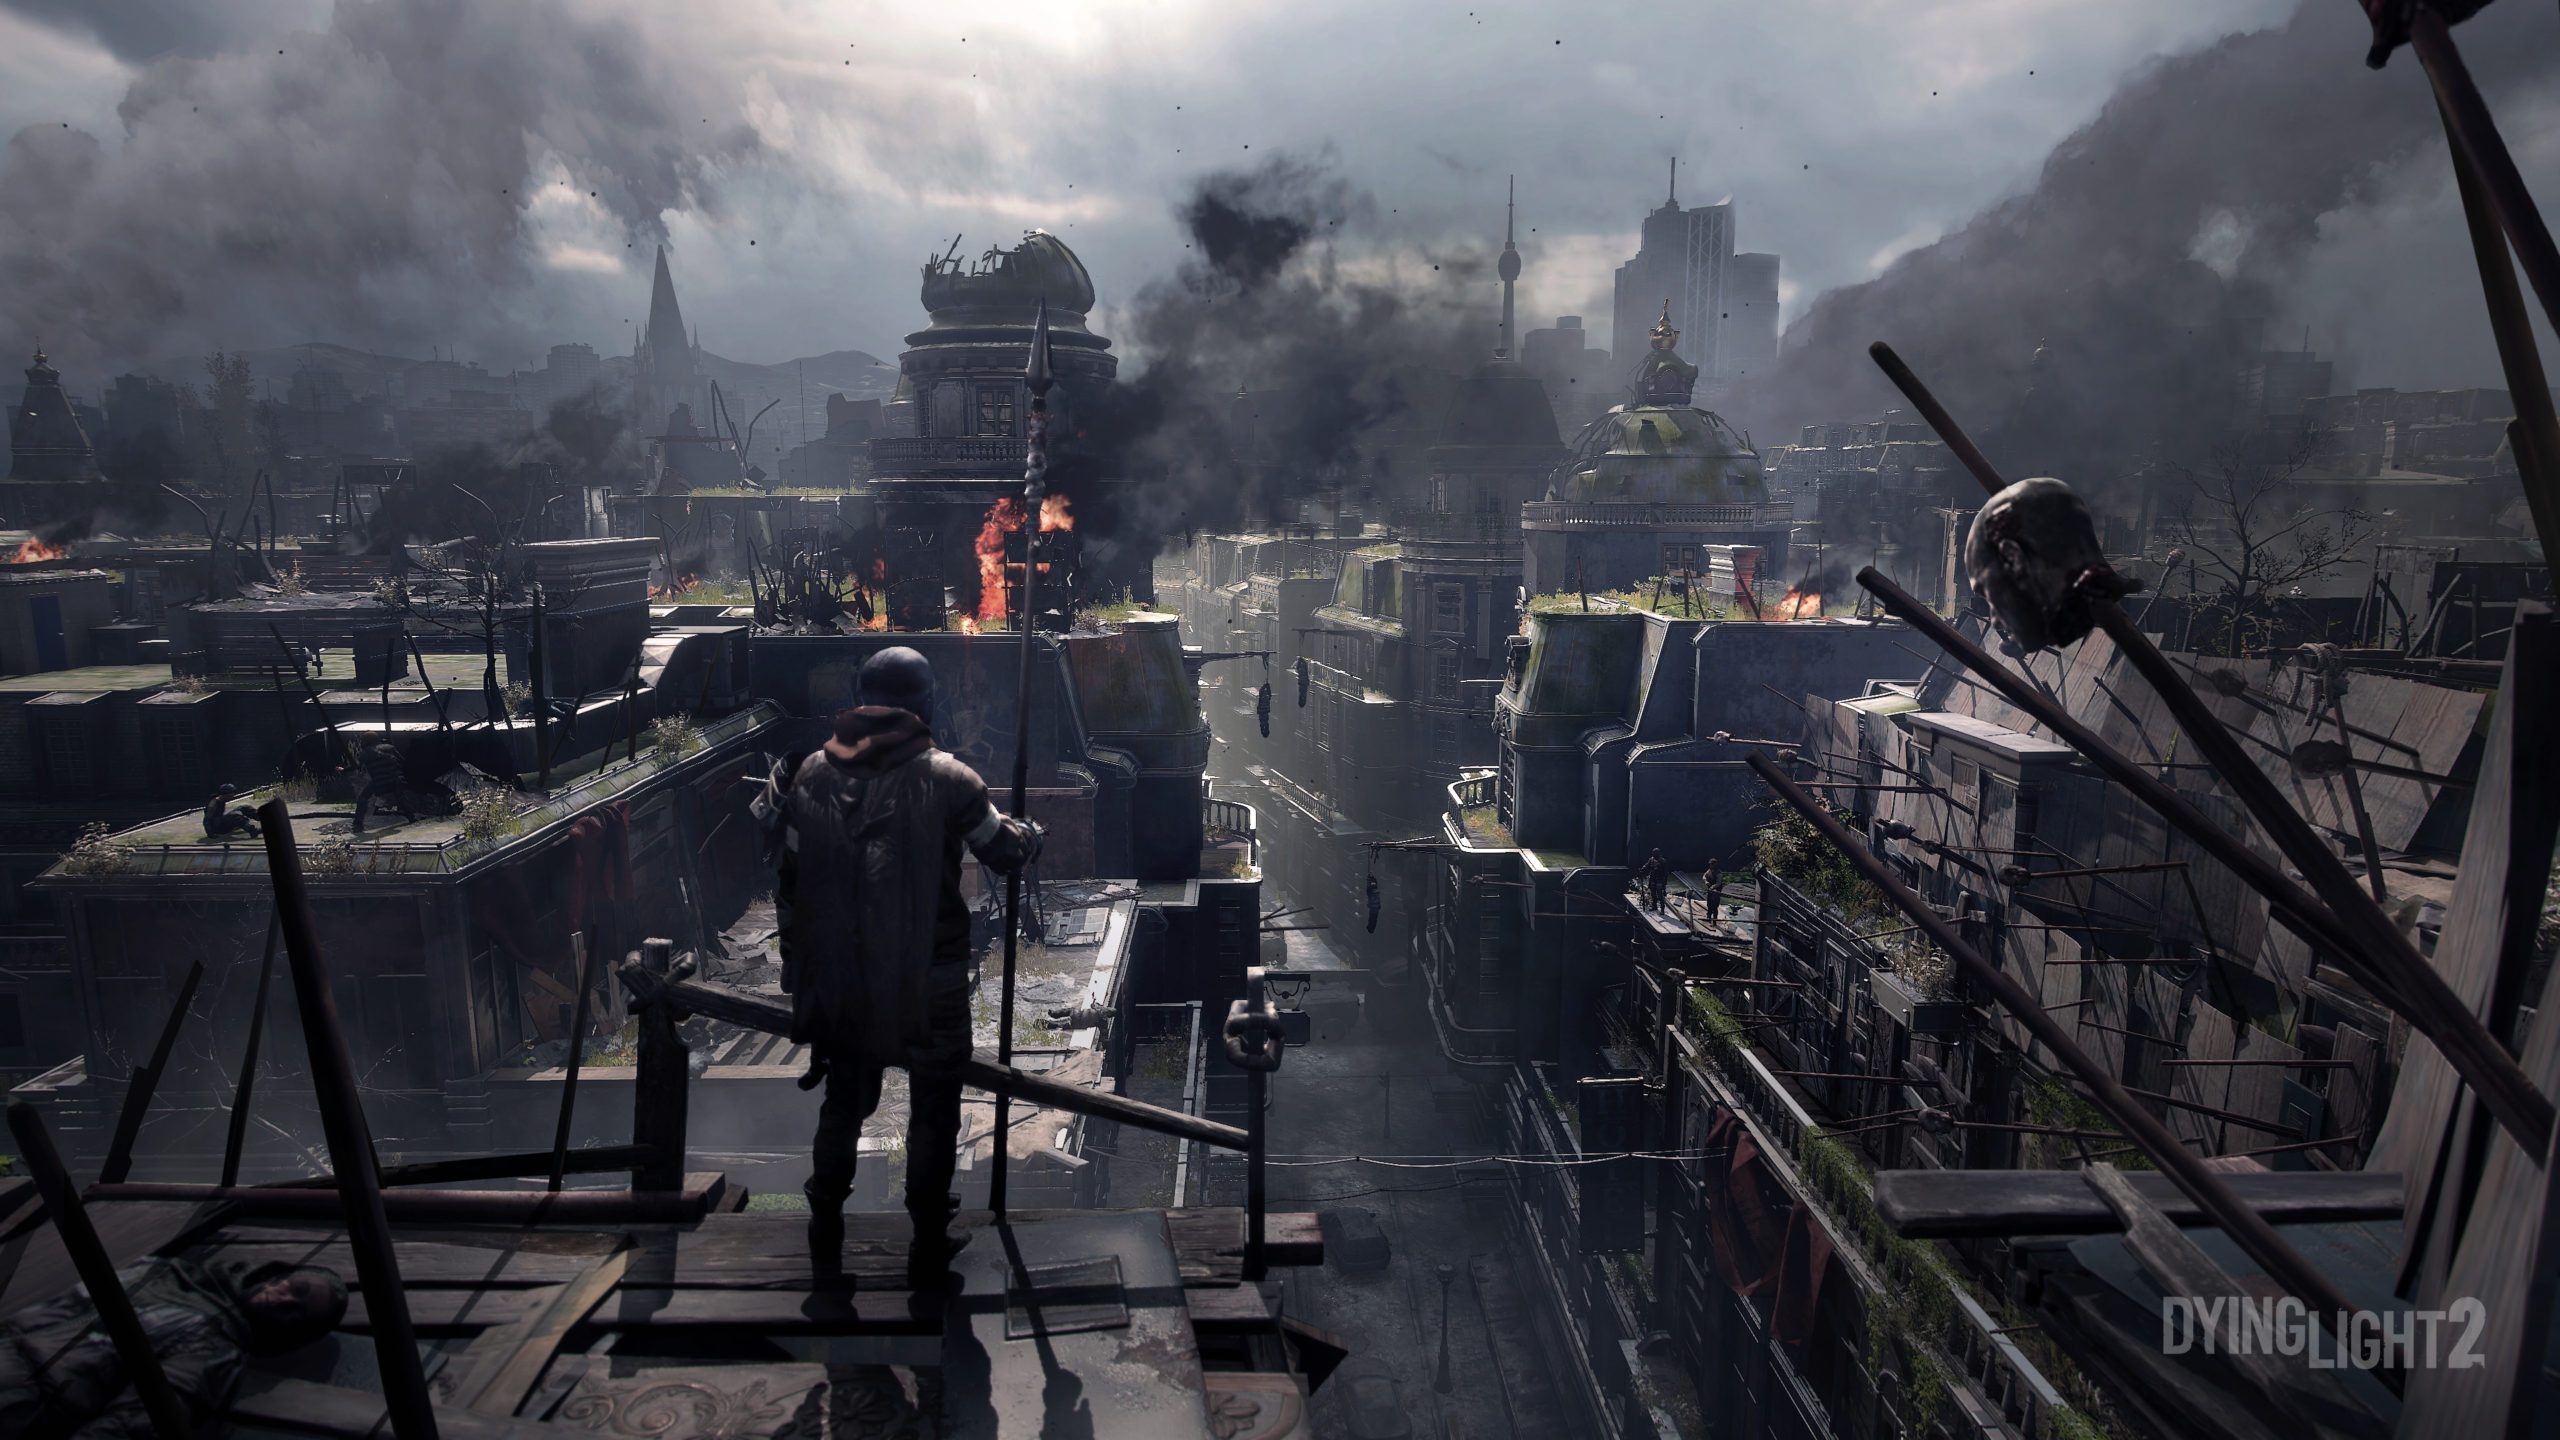 Dying Light 2: Release Date, Trailer, Gameplay, and News | Den of Geek